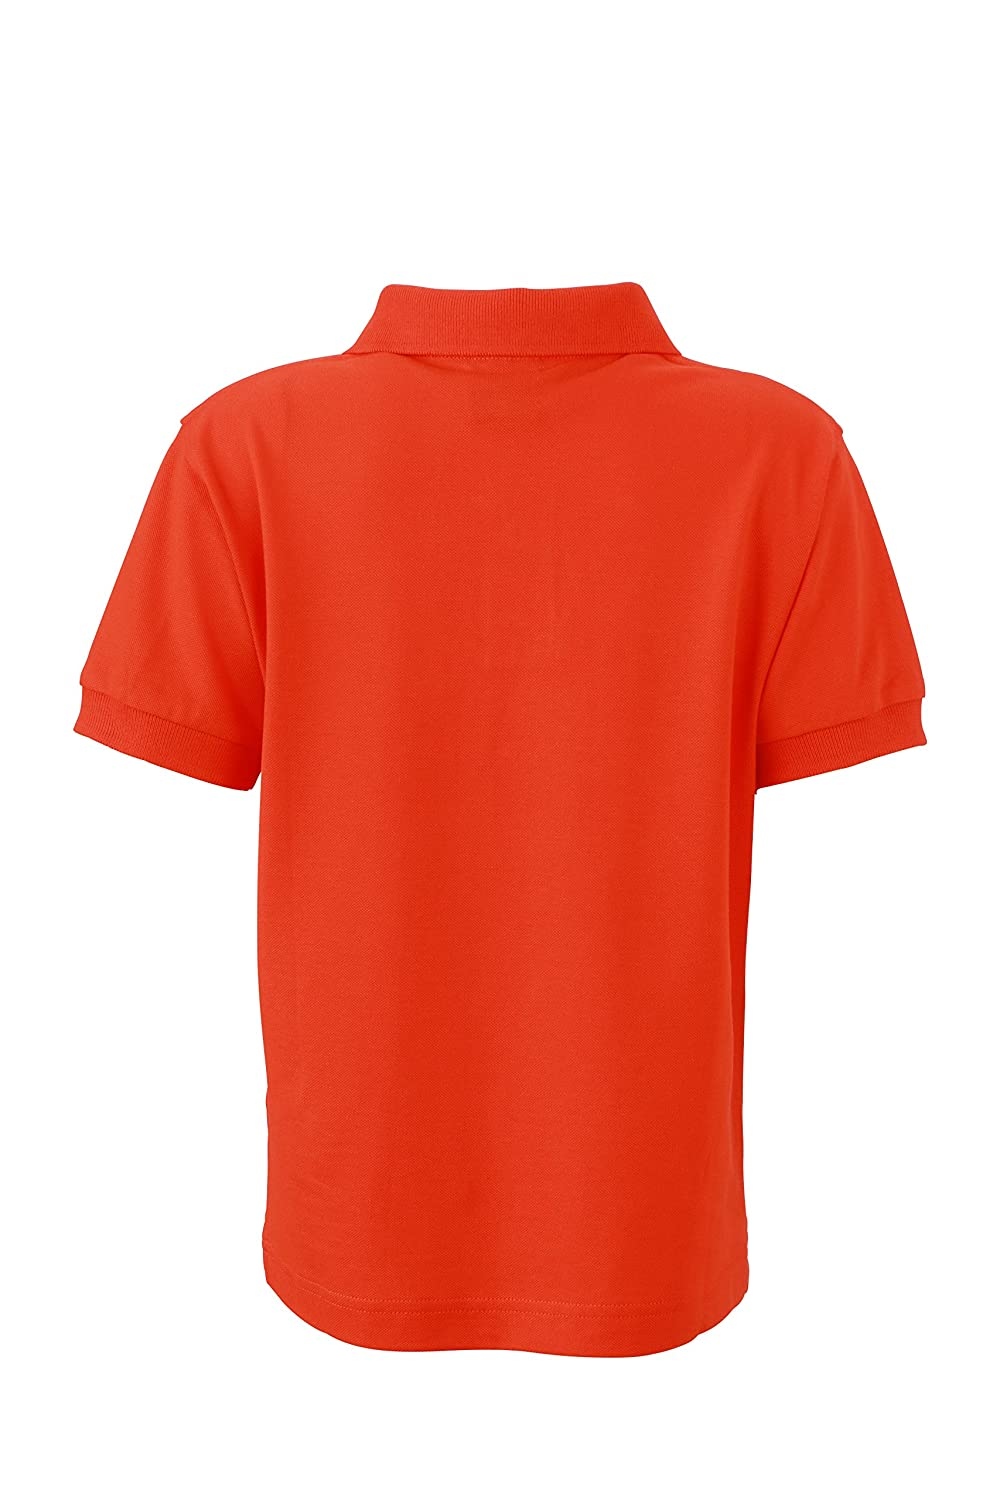 James & Nicholson Boy's Classic Junior Polo Shirt: Amazon.co.uk: Clothing